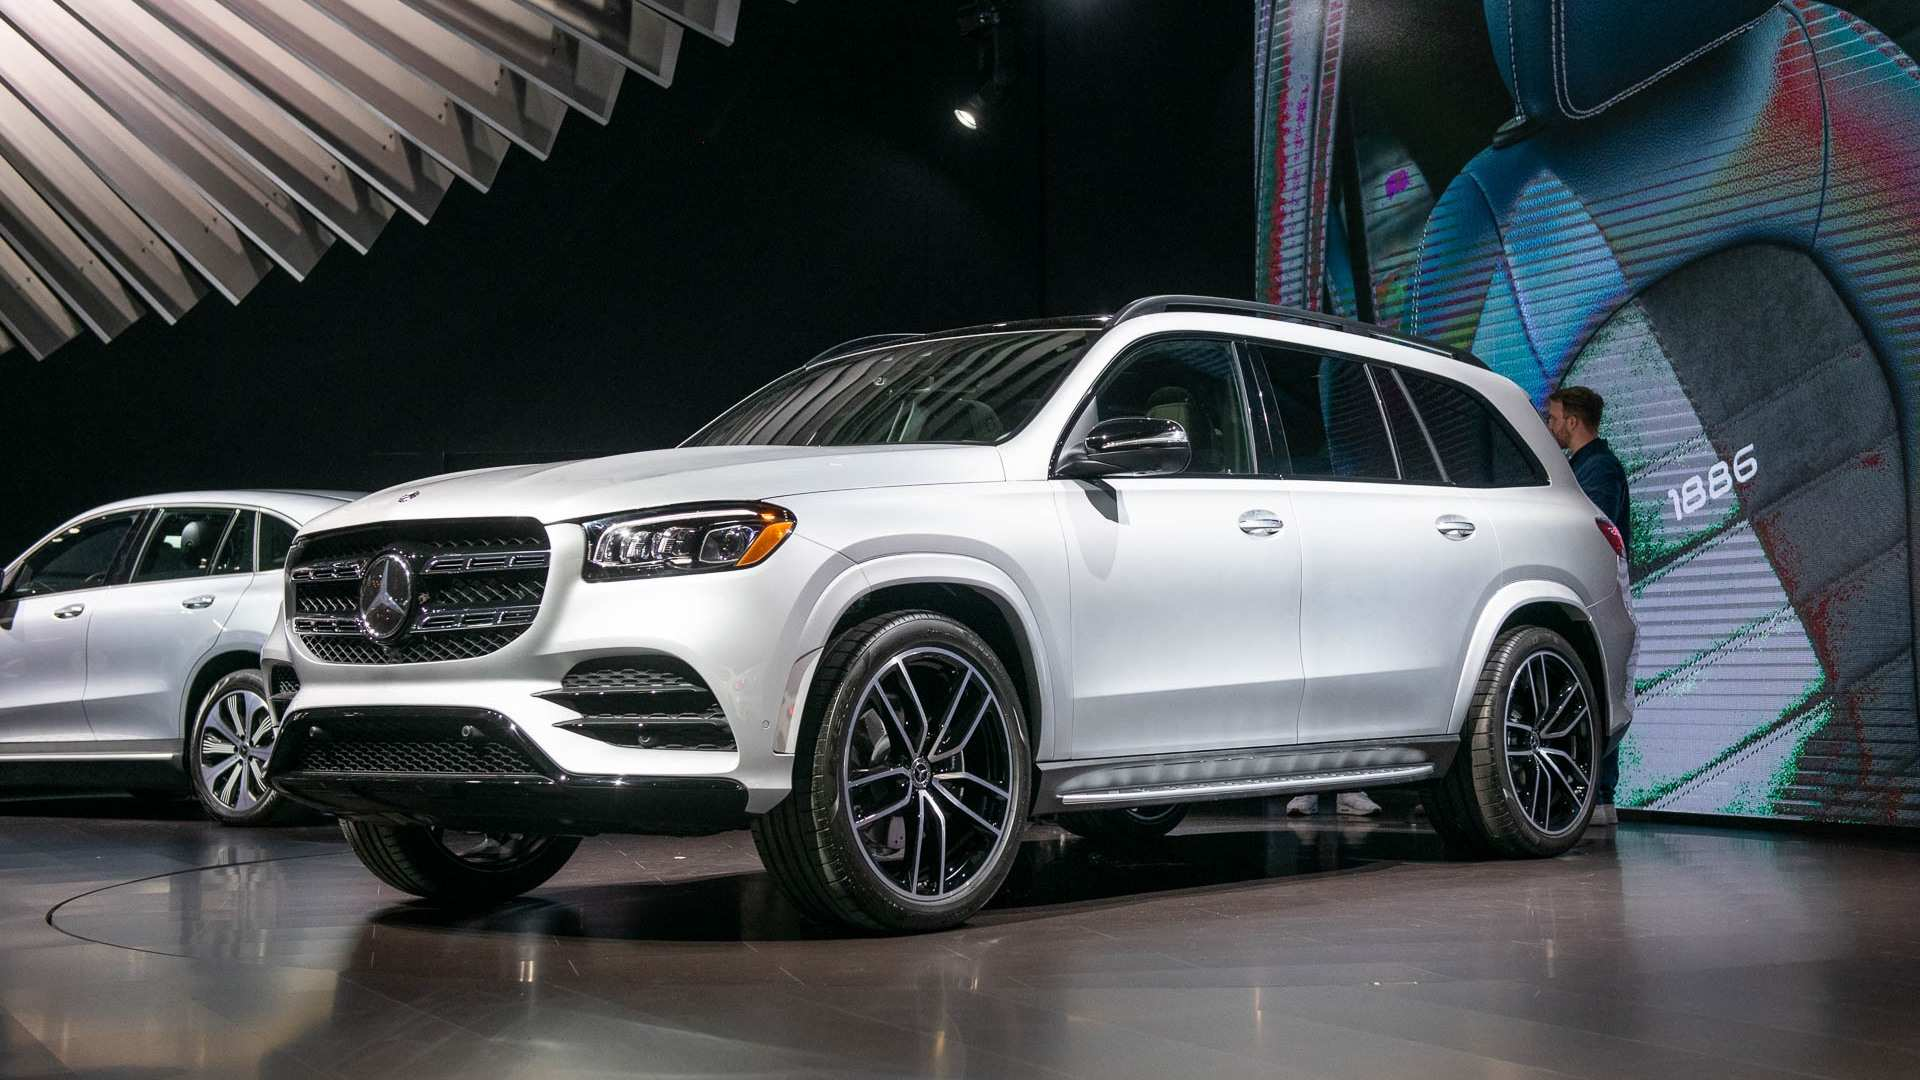 35 The Best 2020 Mercedes GLS Concept And Review